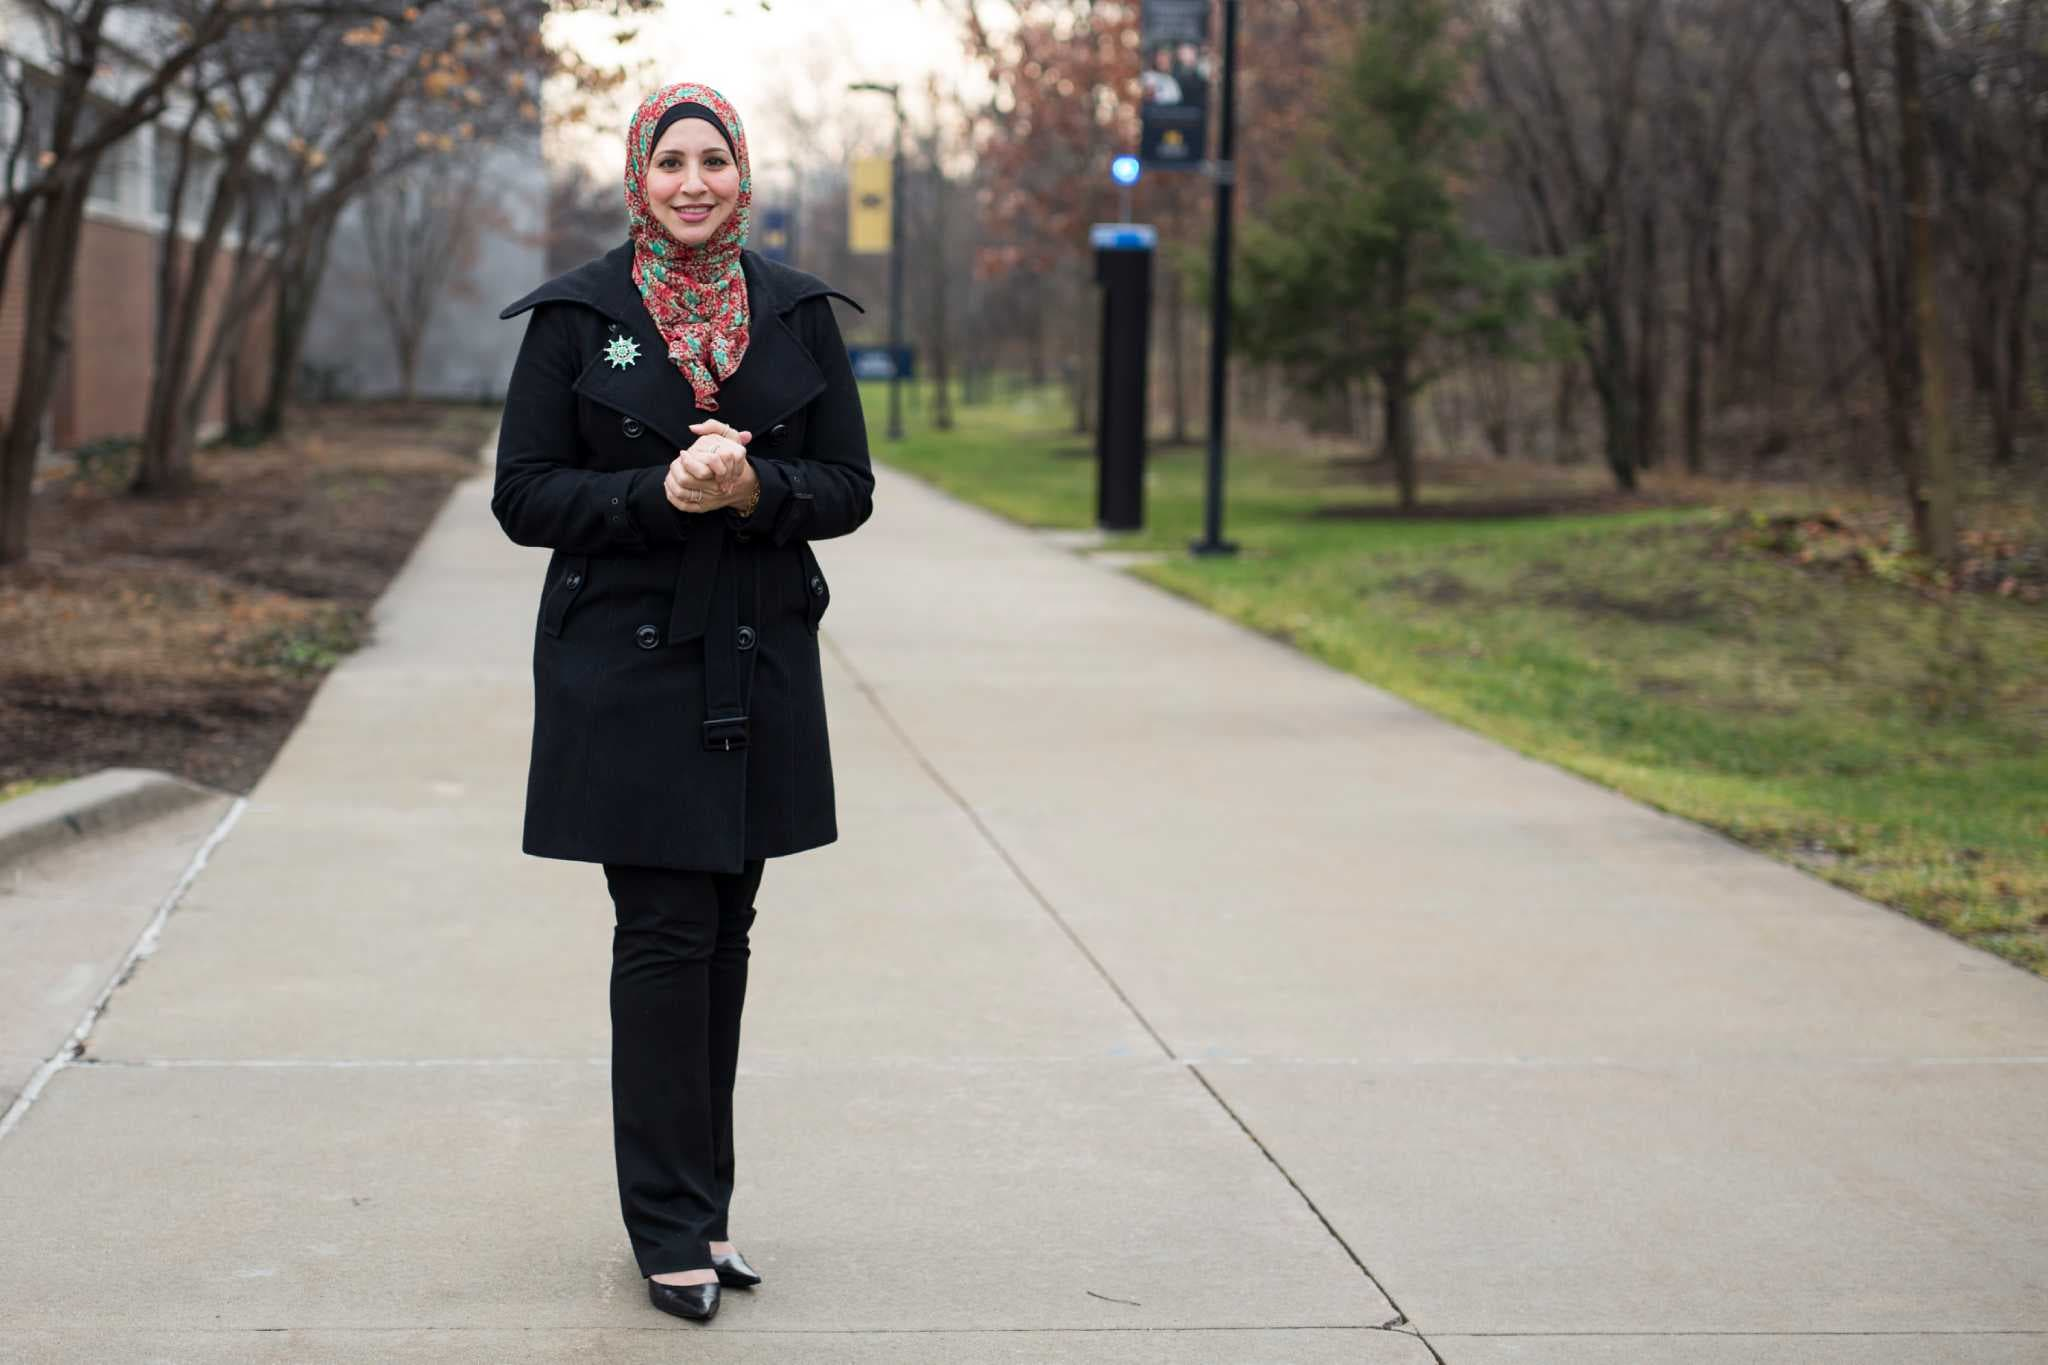 muslim single women in evergreen American muslim women who choose to cover undeniably act out real life resistance to the hyper-sexualization of women and girls in the west it takes a warrior to be a muslim woman so often we non-veiled, non-muslim women look at our veiled sisters and we feel pity that they do not have the freedoms that we have.